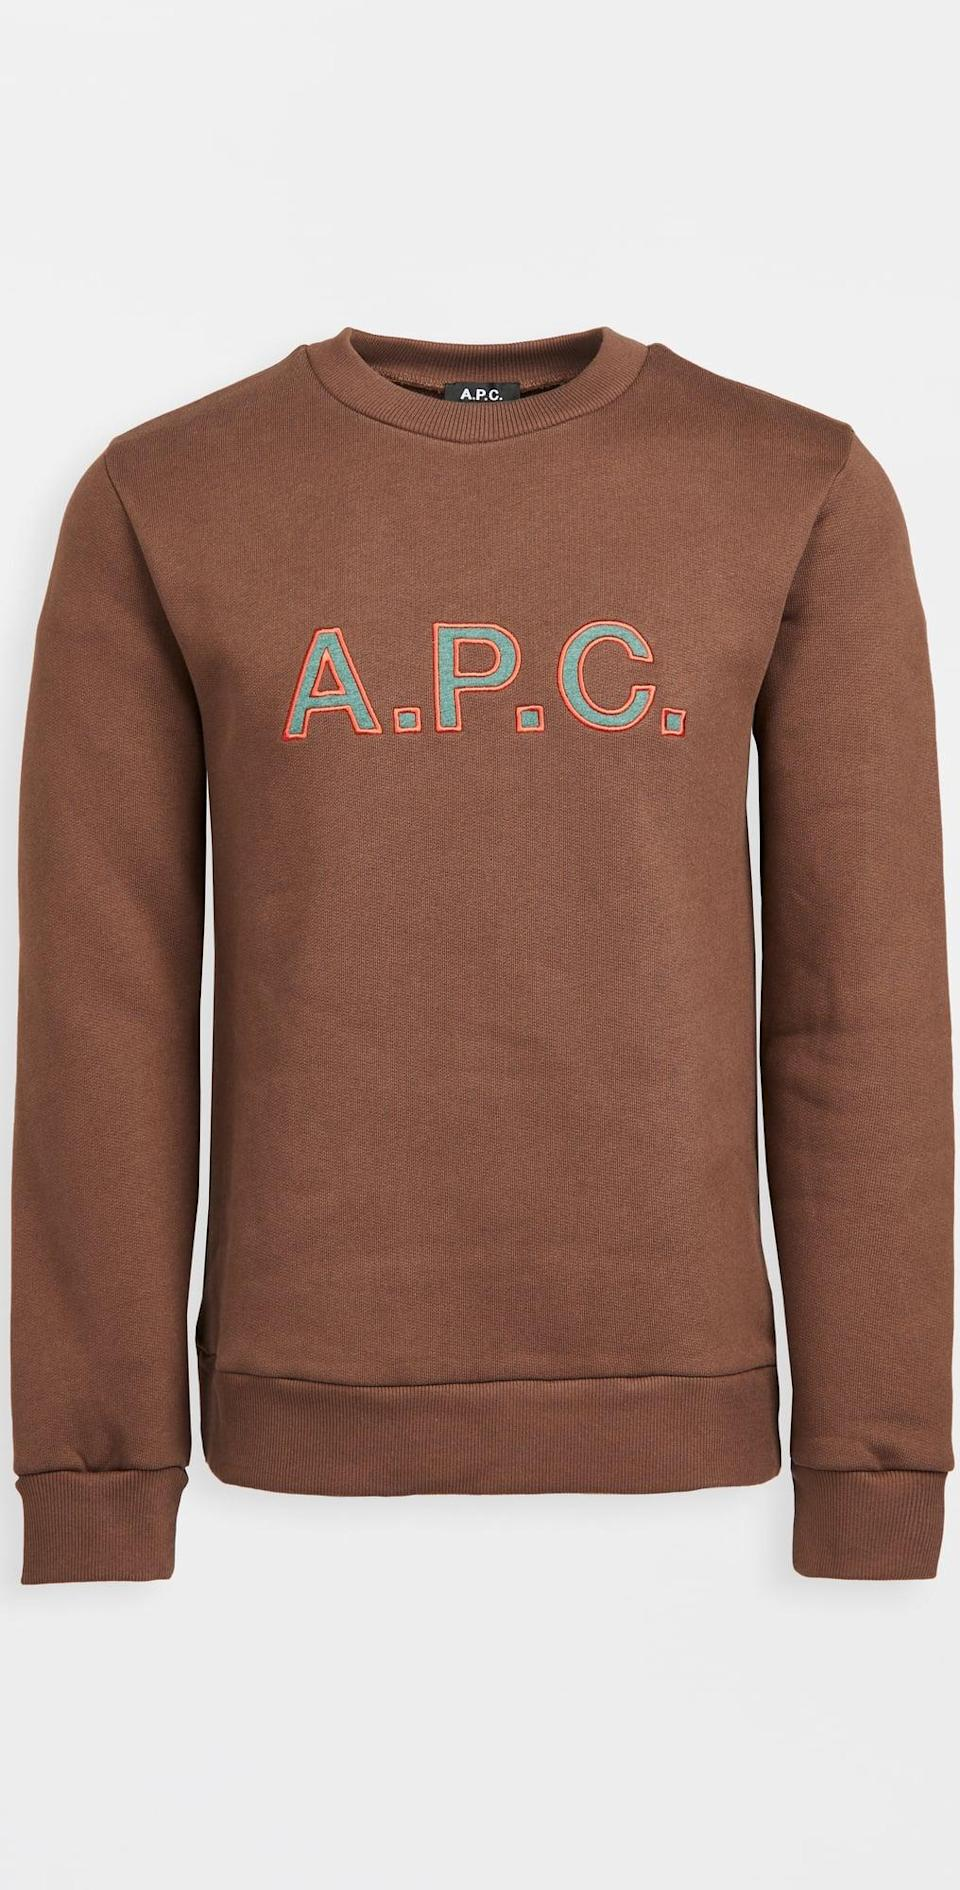 <p>This <span>A.P.C. Hugues Sweatshirt</span> ($255) not only has an easy-to-style silhouette, but the color makes it particularly fall-friendly. The embossed letters make it effortlessly cool.</p>